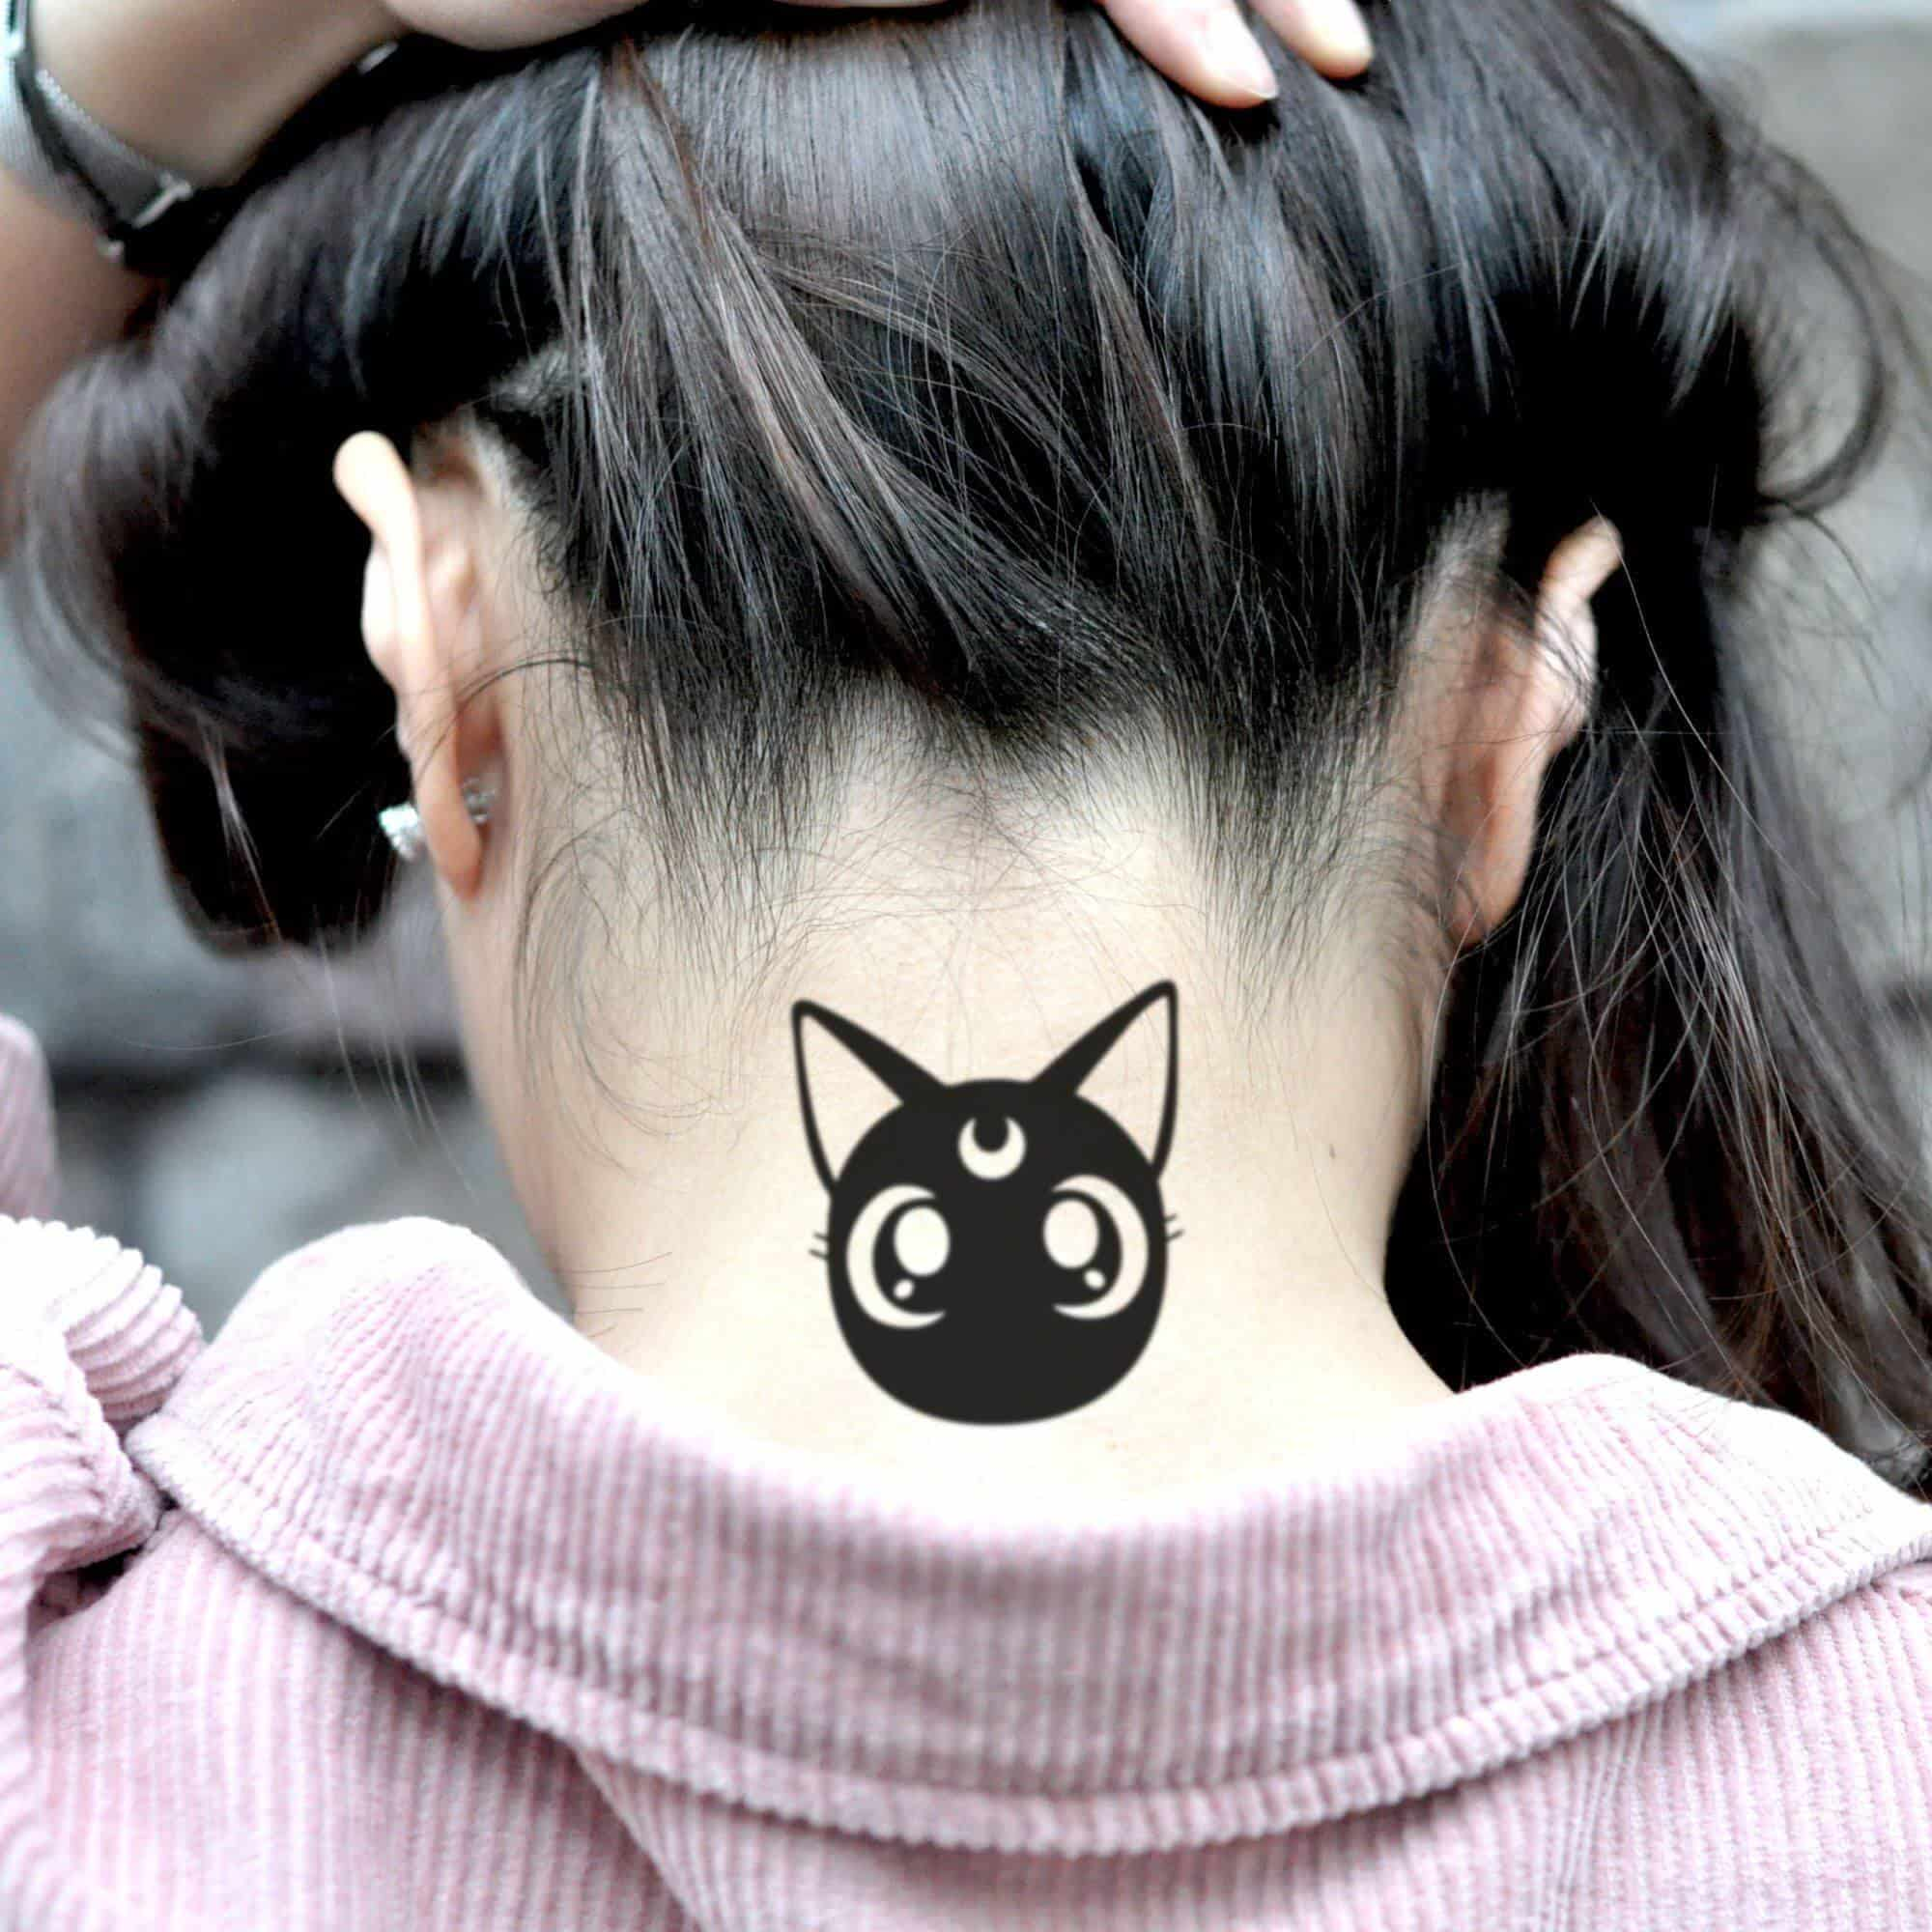 luna sailor moon tattoo on neck